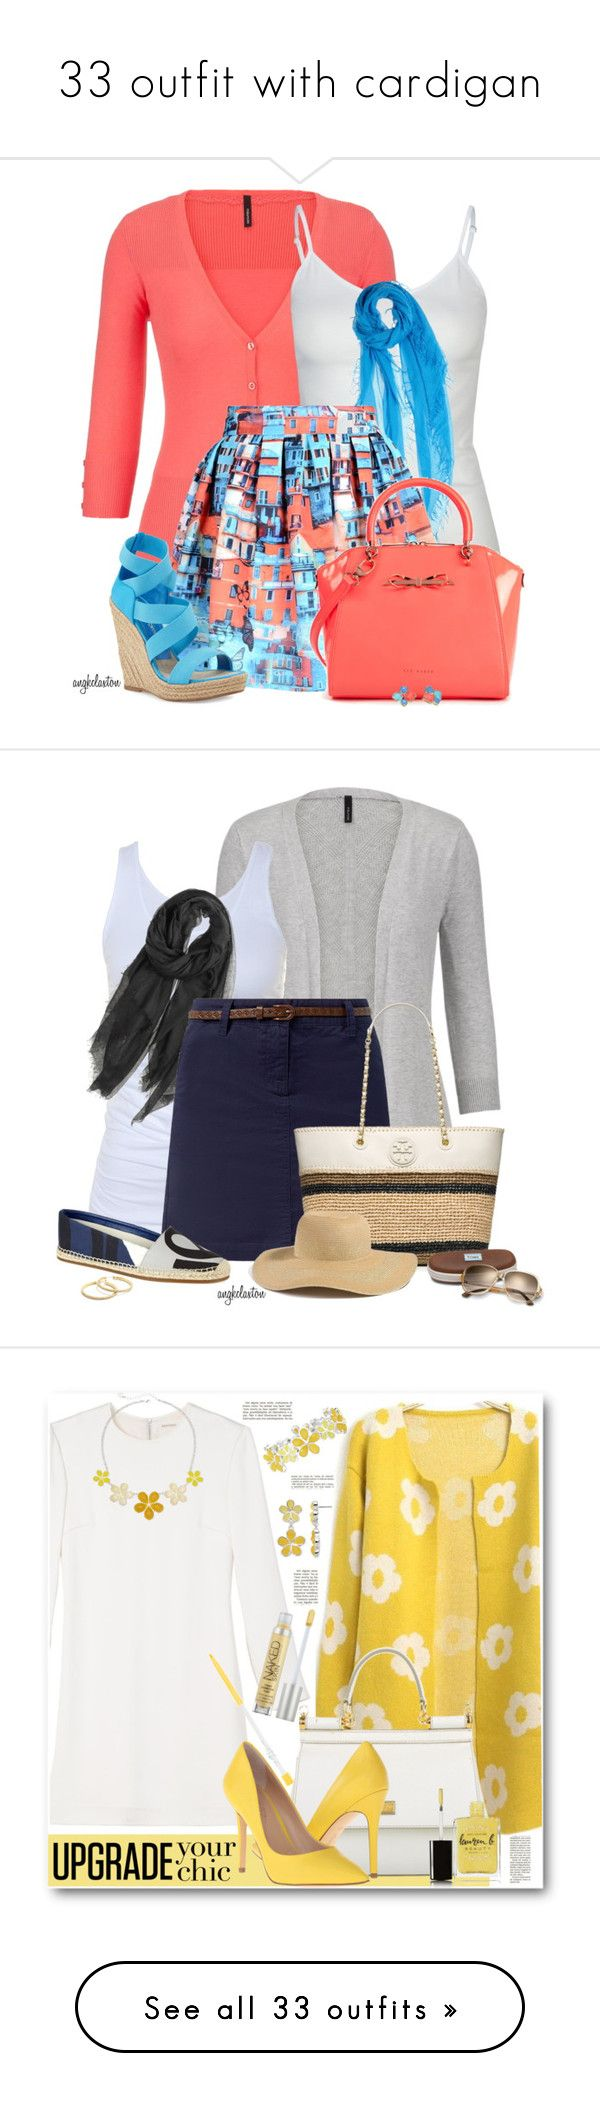 """""""33 outfit with cardigan"""" by outfitideasbook ❤ liked on Polyvore featuring maurices, Full Tilt, Chan Luu, Alice + Olivia, Ted Baker, Jean-Michel Cazabat, Kate Spade, Tusnelda Bloch, Calypso St. Barth and Burberry"""